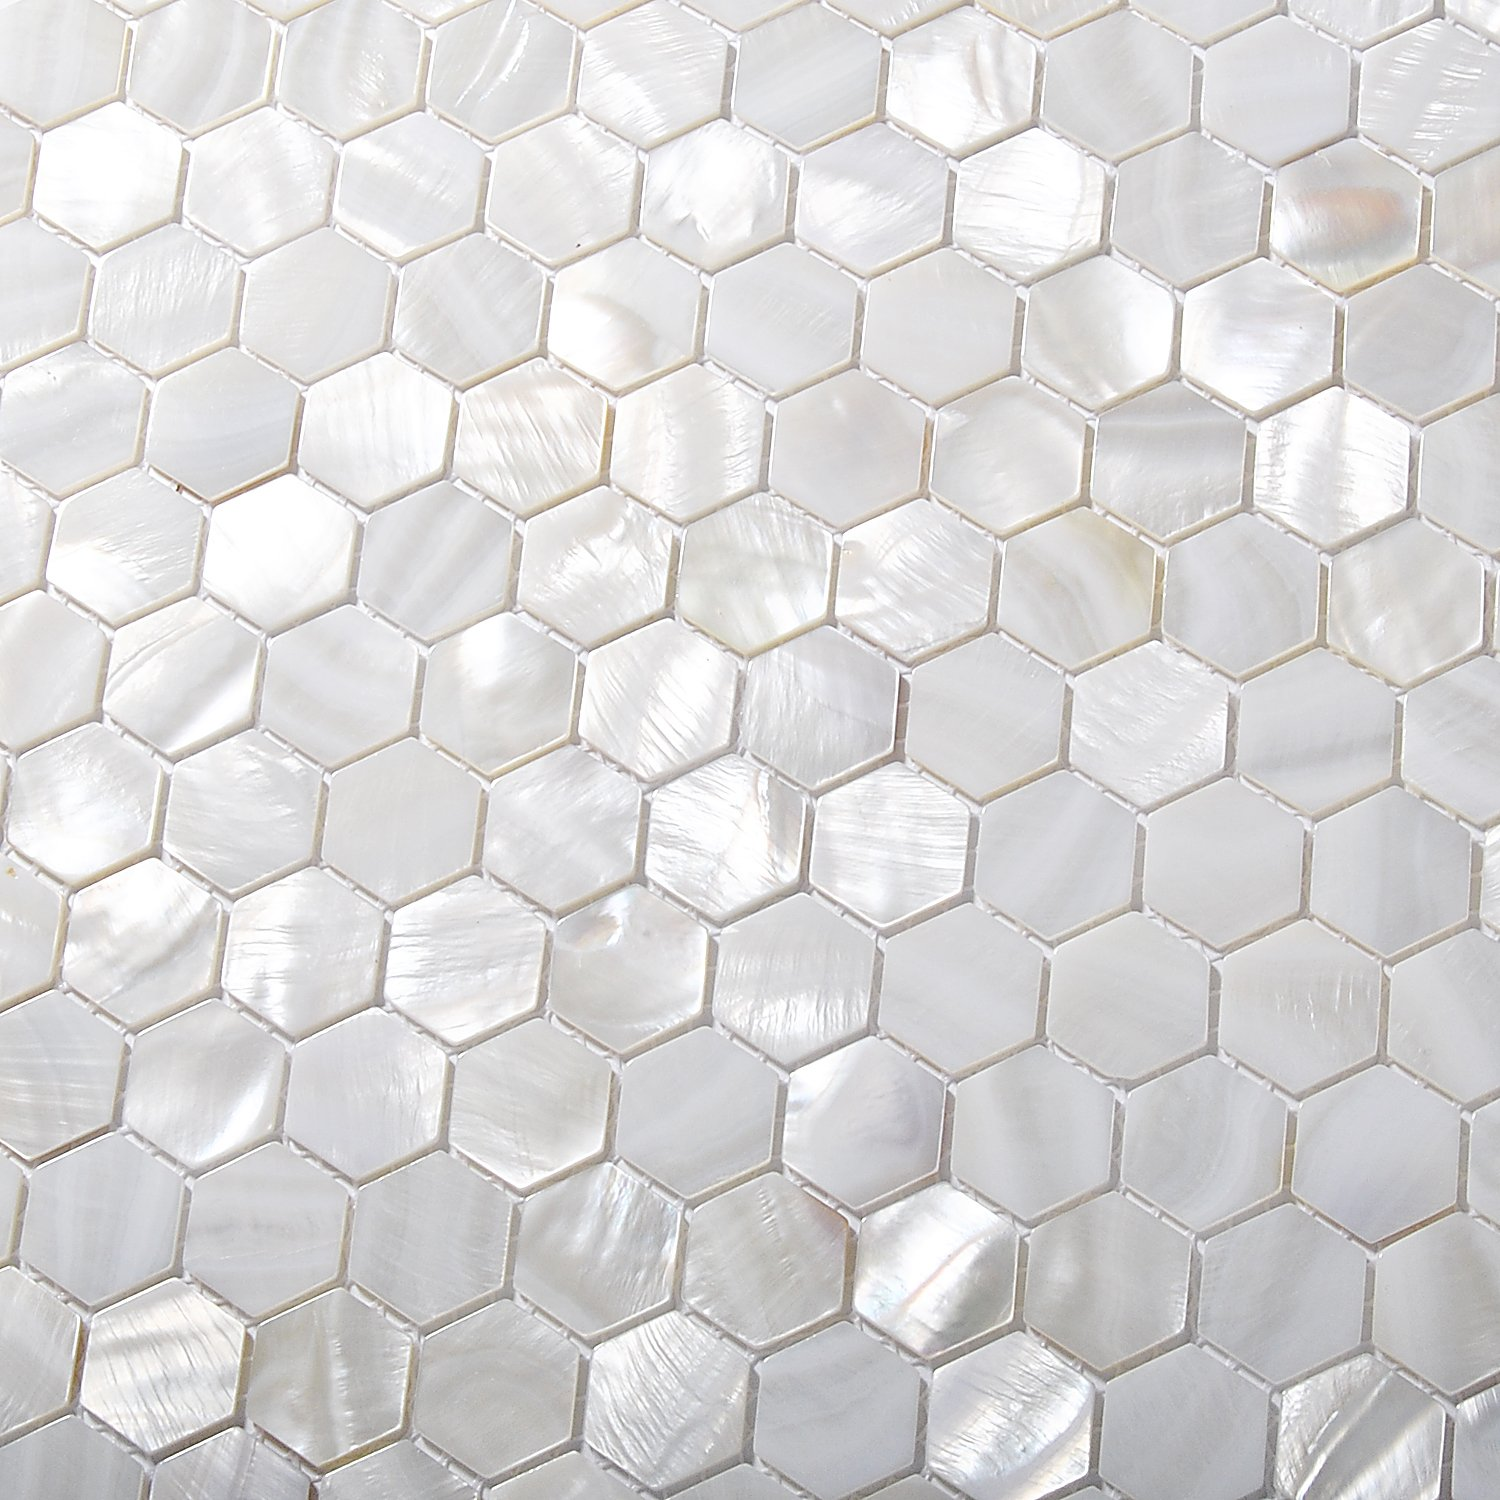 Amazon.com: TST Mother Of Pearl Tiles White Hexagon Shinning Wall ...